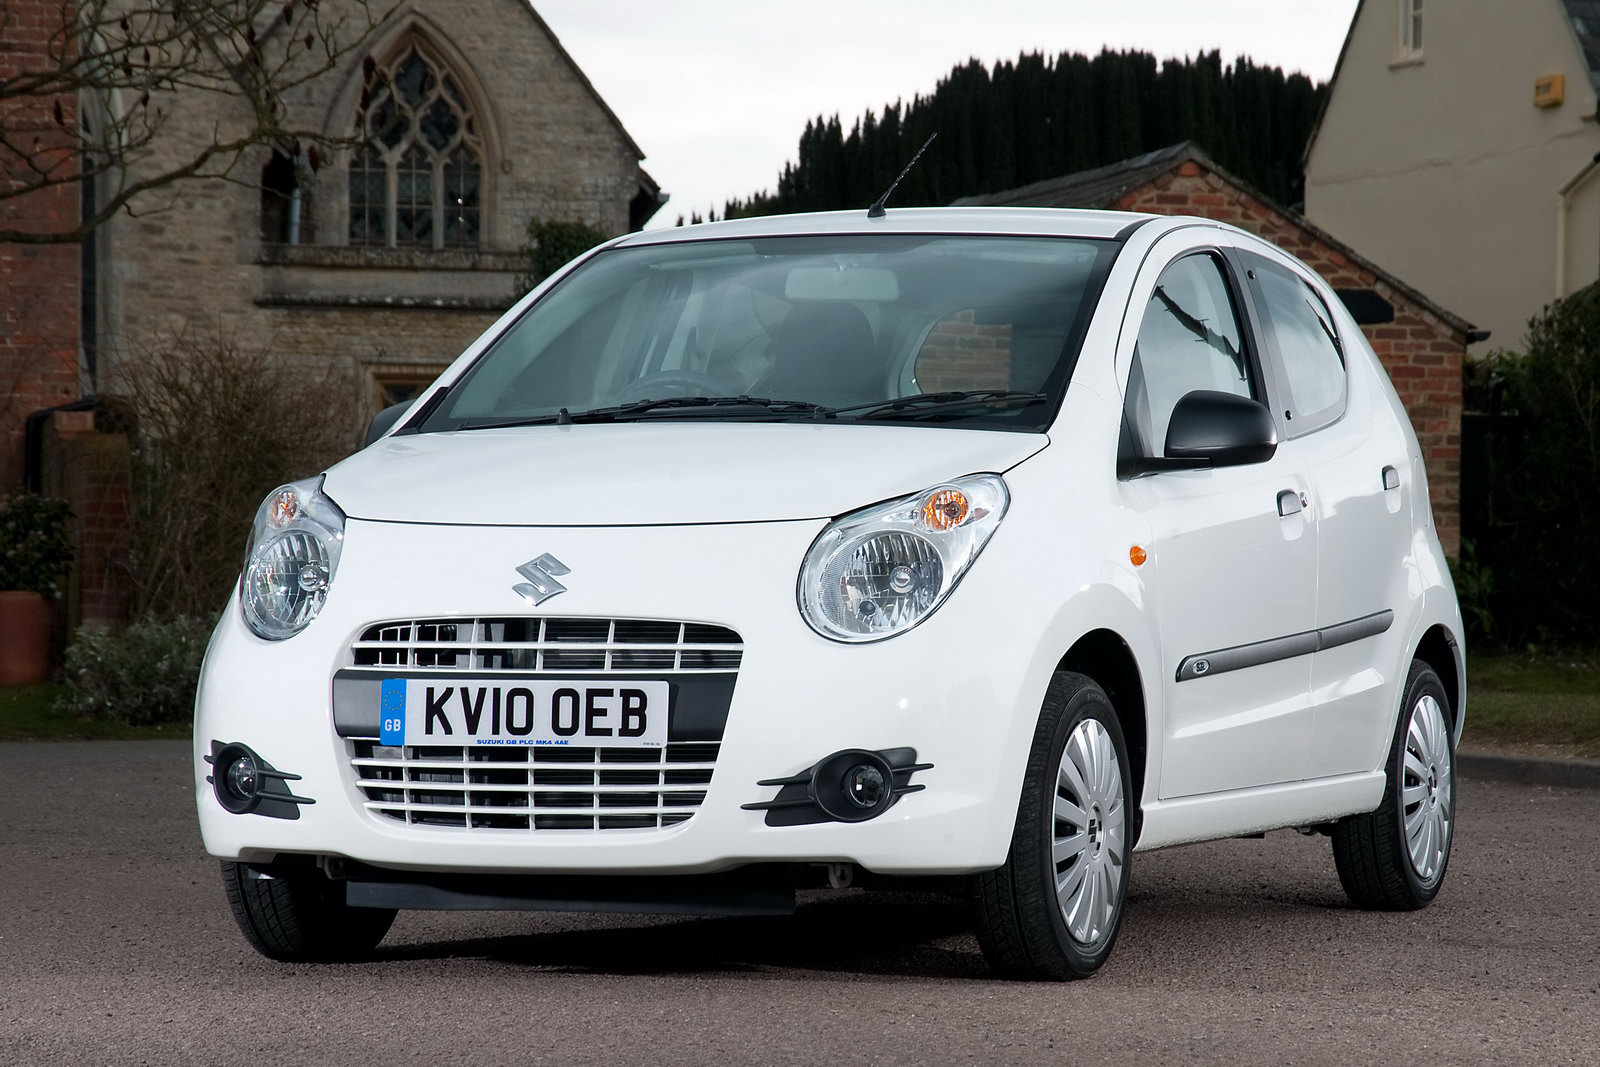 Superb Suzuki UK Has Revealed A Special Edition For The Alto City Car. Featuring A  Variety Of External And Equipment Upgrades, The SZ L Model Is Available In  ...